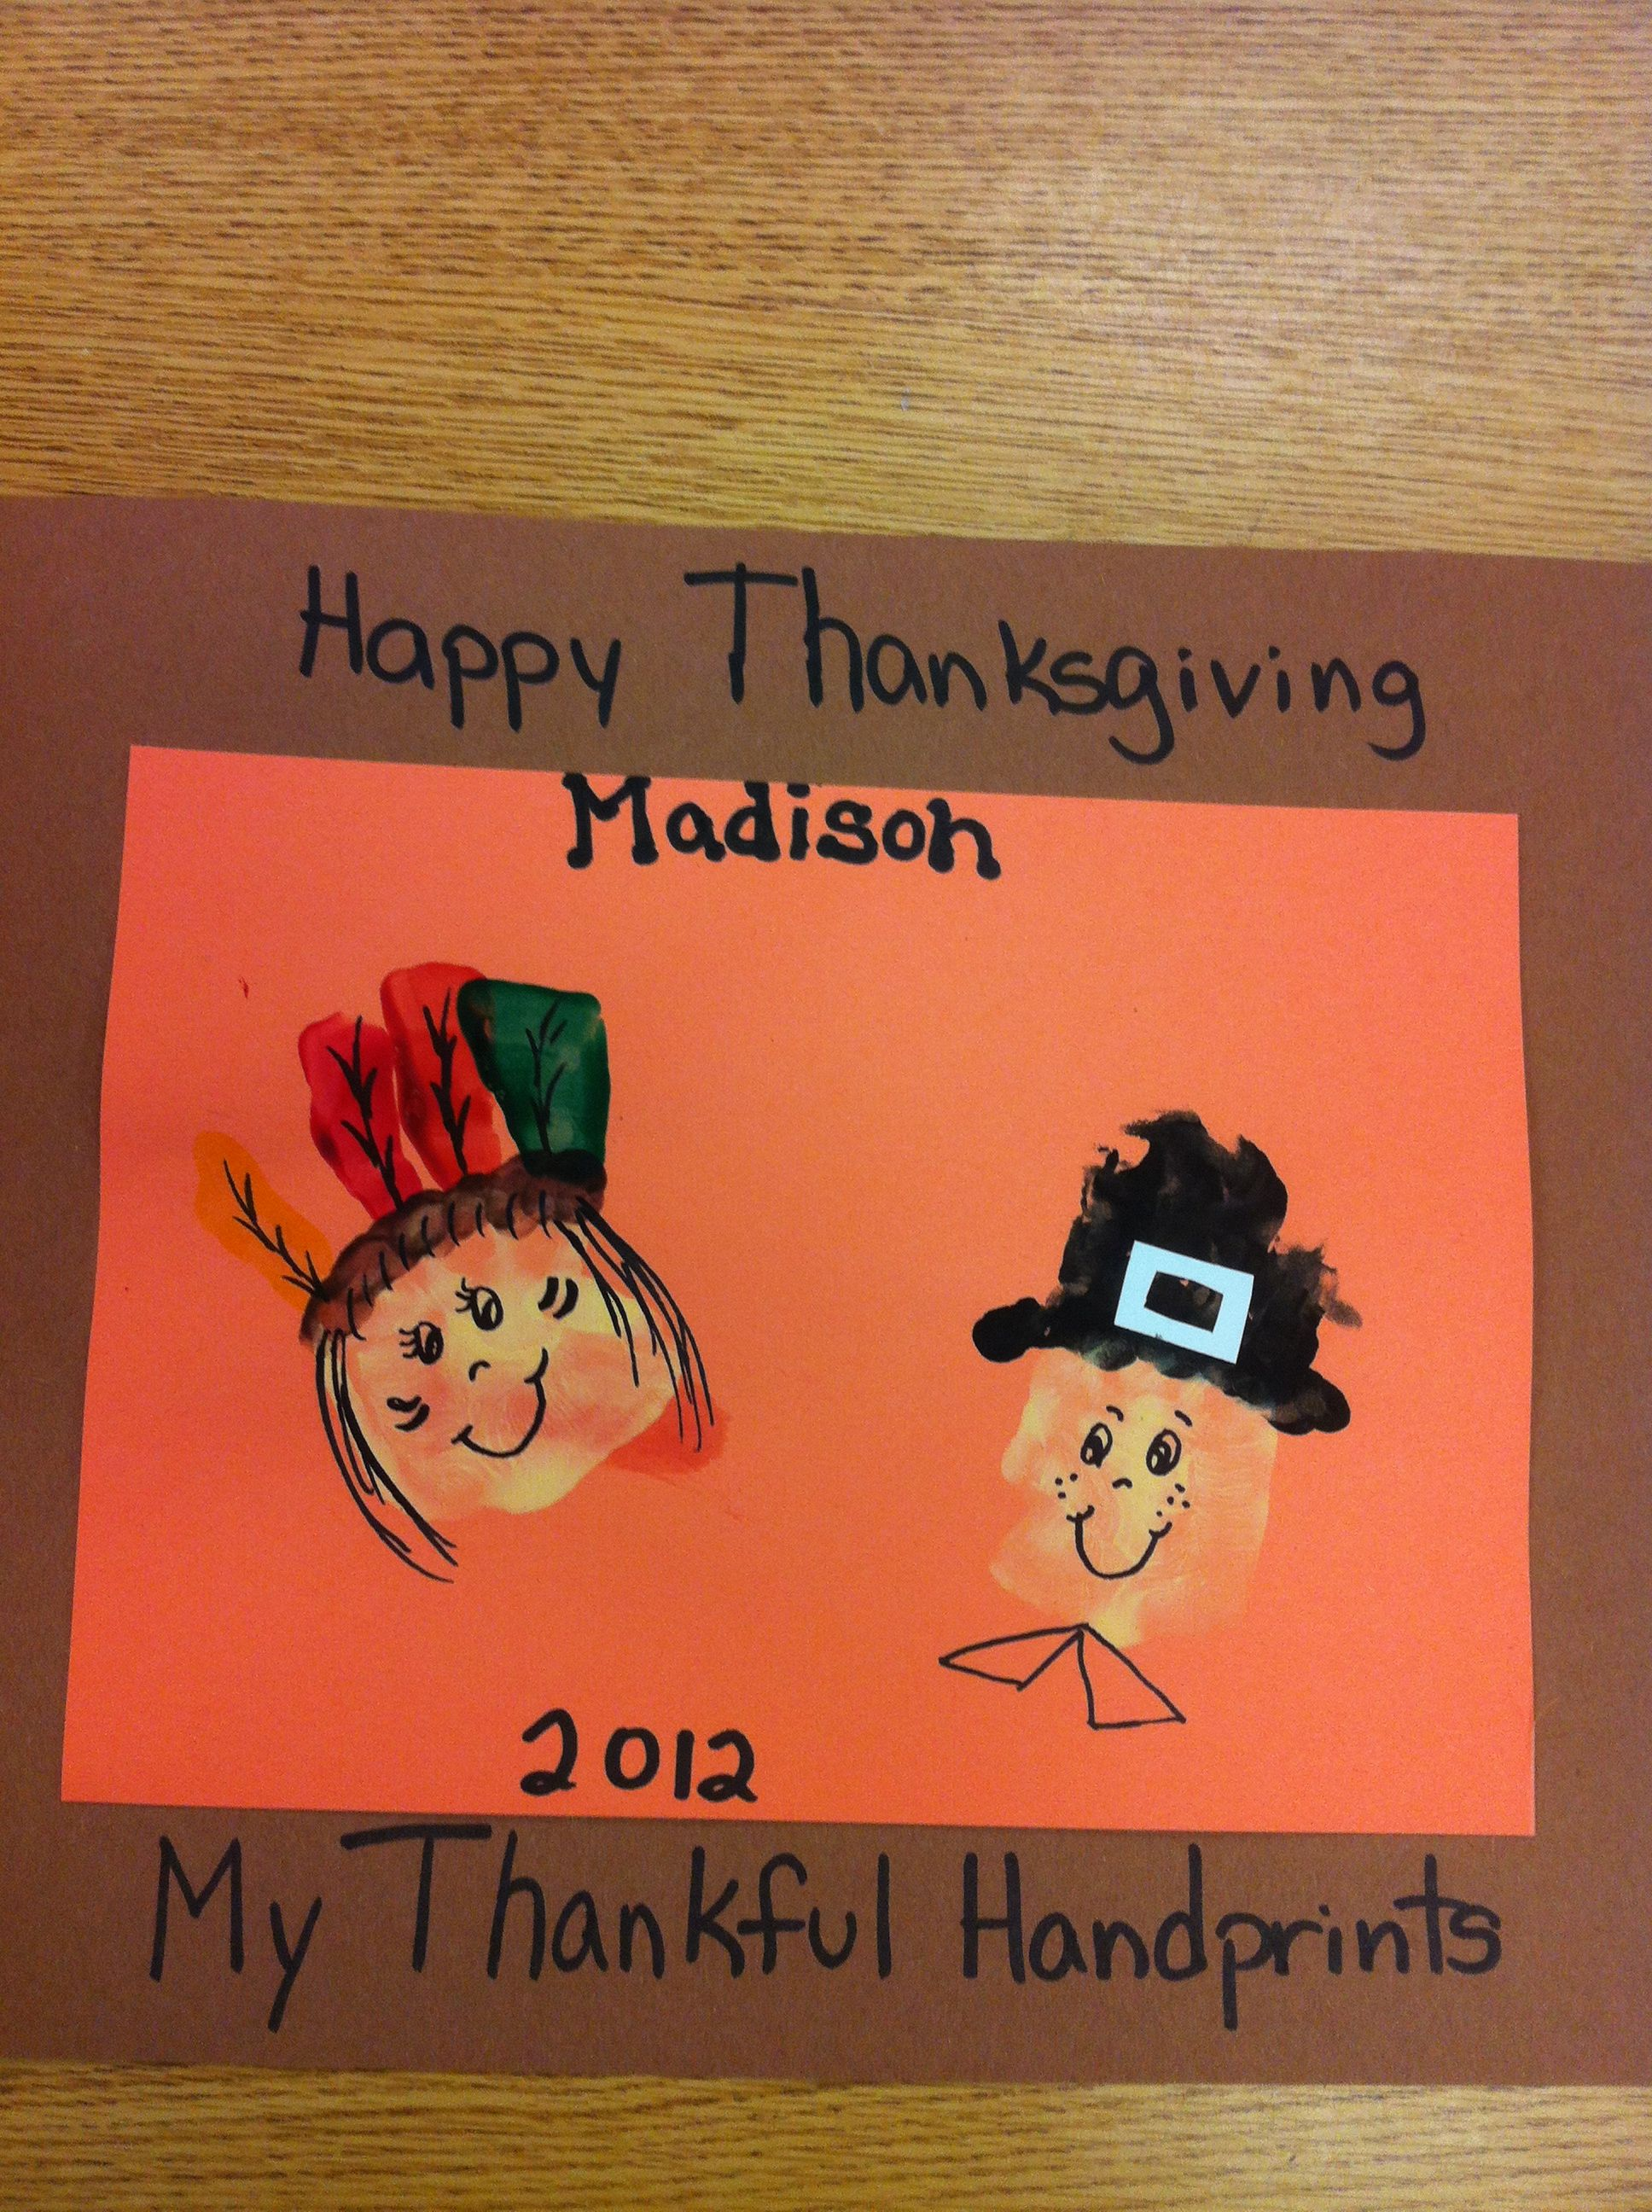 Handprints Without The Thumbs Turned Into Pilgrim And